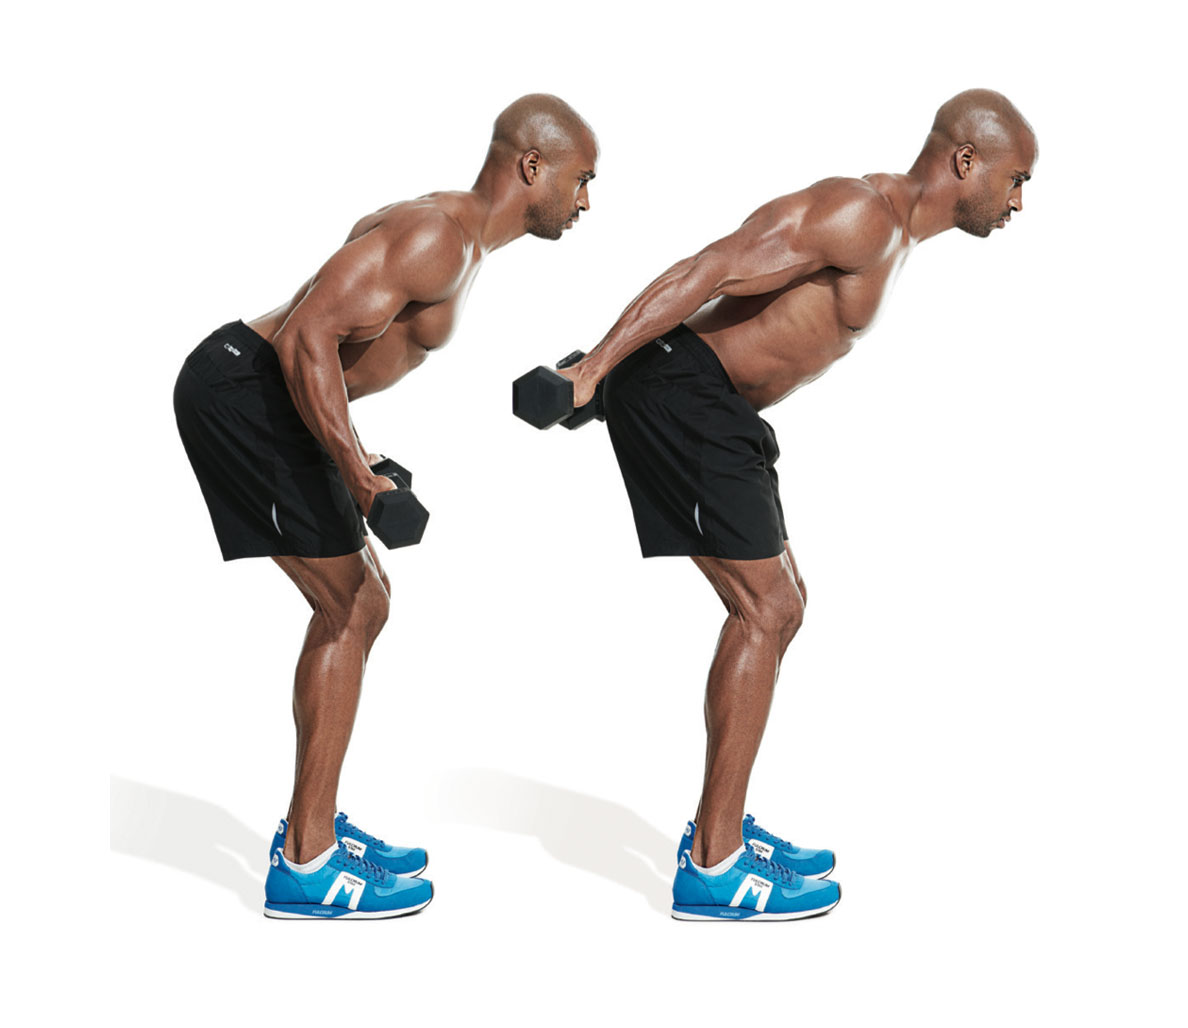 Triceps workouts for muscle growth